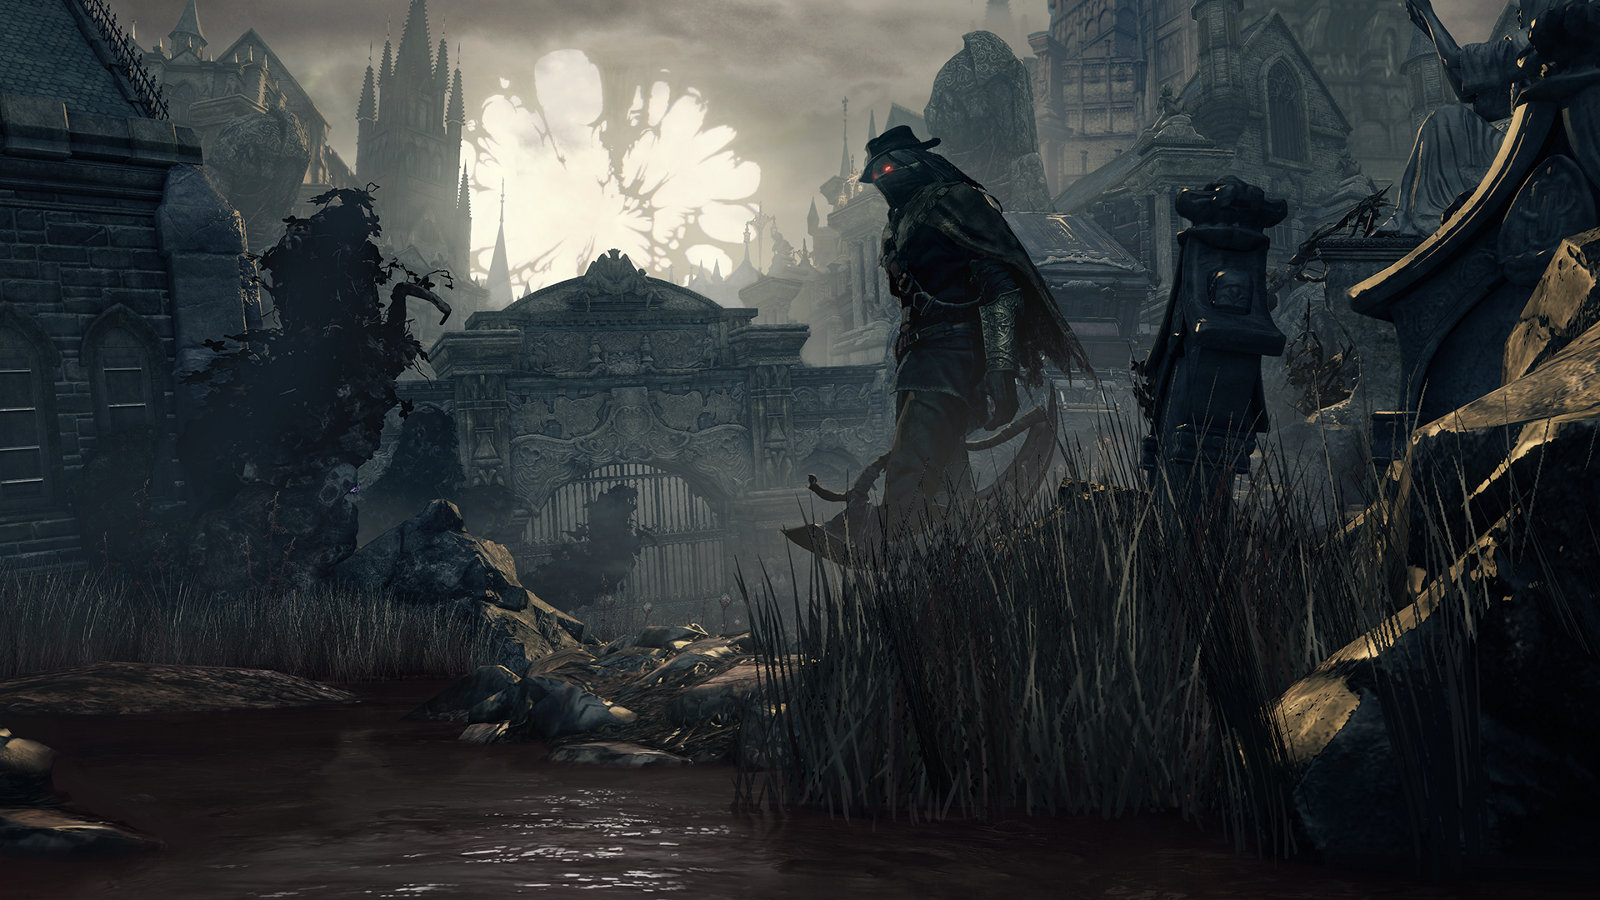 https://media.playstation.com/is/image/SCEA/bloodborne-the-old-hunters-page-section-background-03-ps4-us-02oct15?$BackgroundFeature_Large$